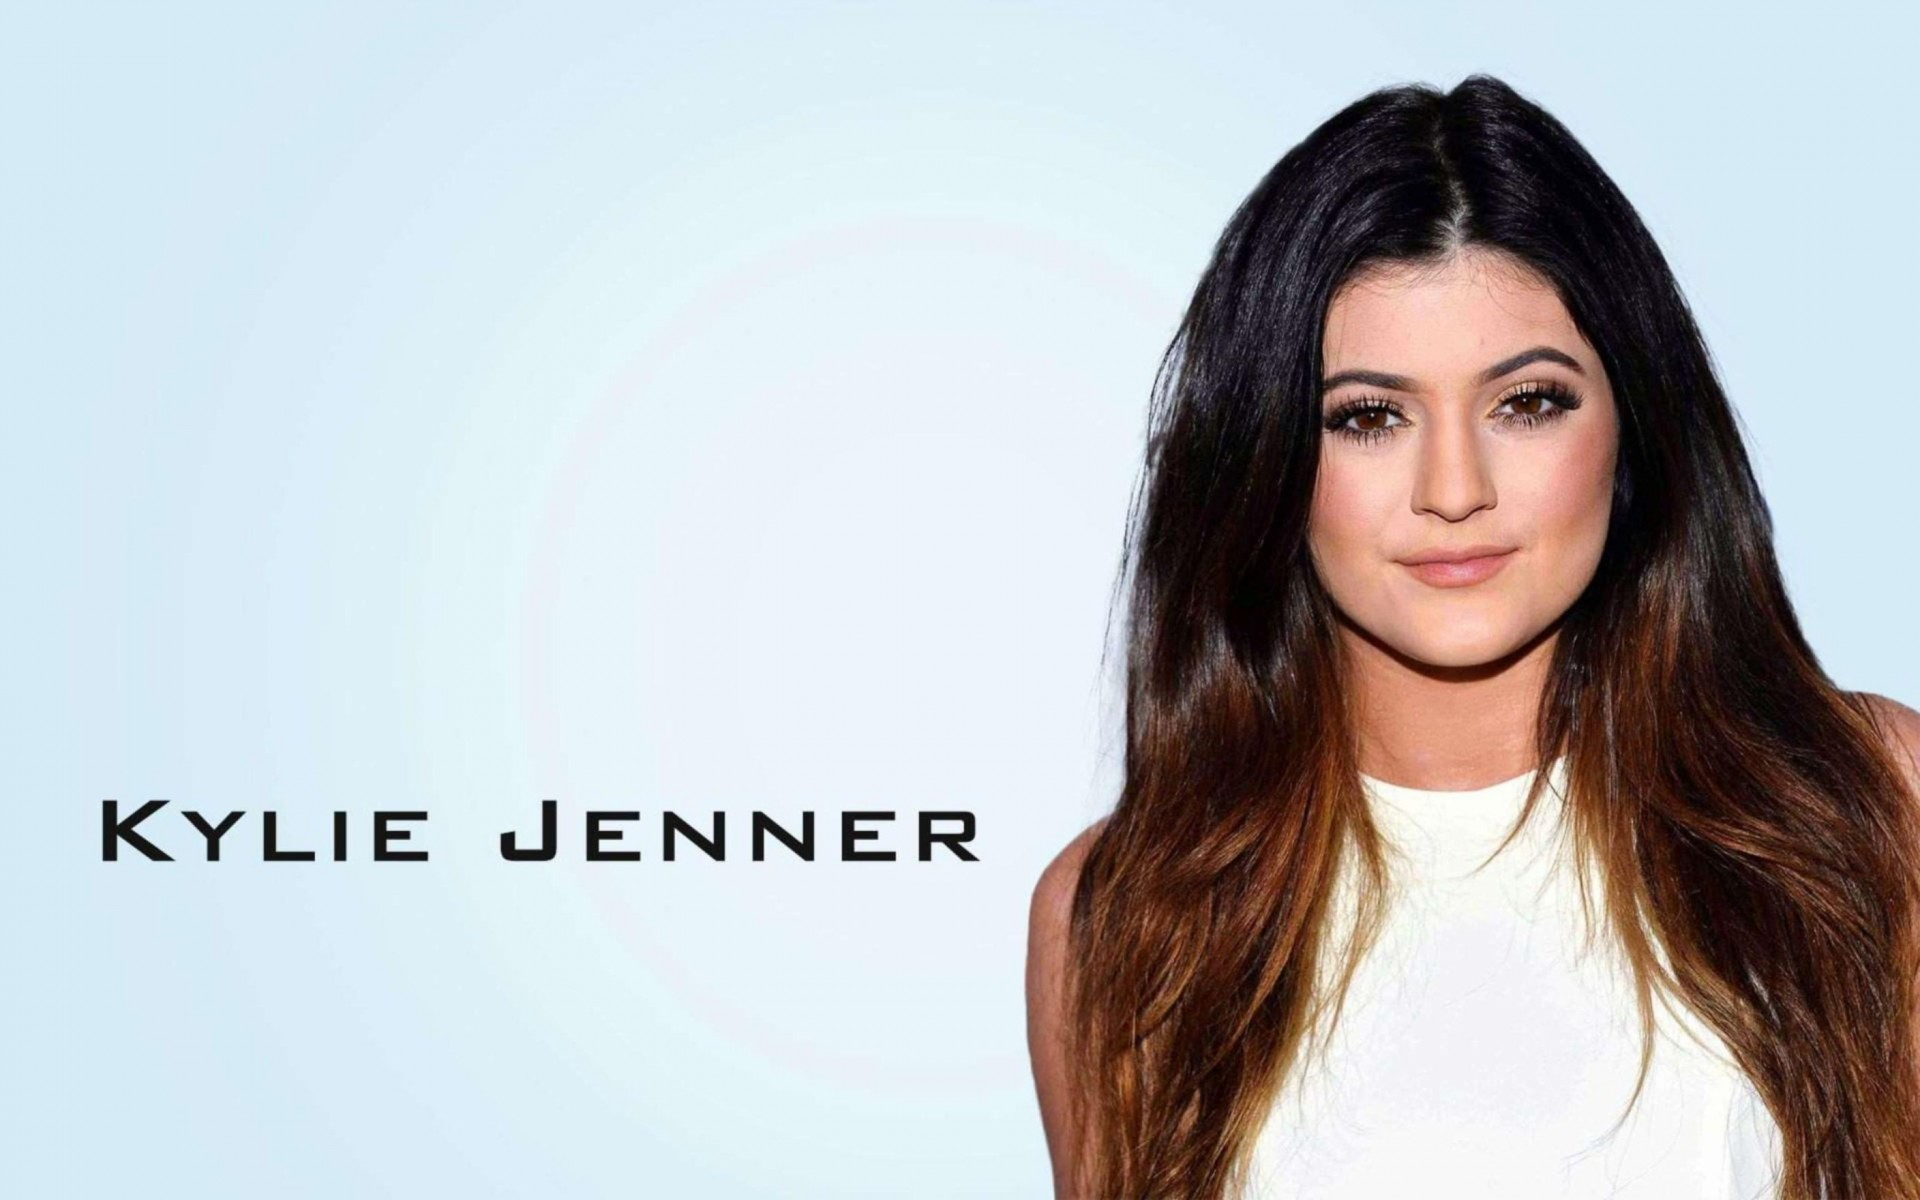 Kylie Jenner Celebrity Wallpaper